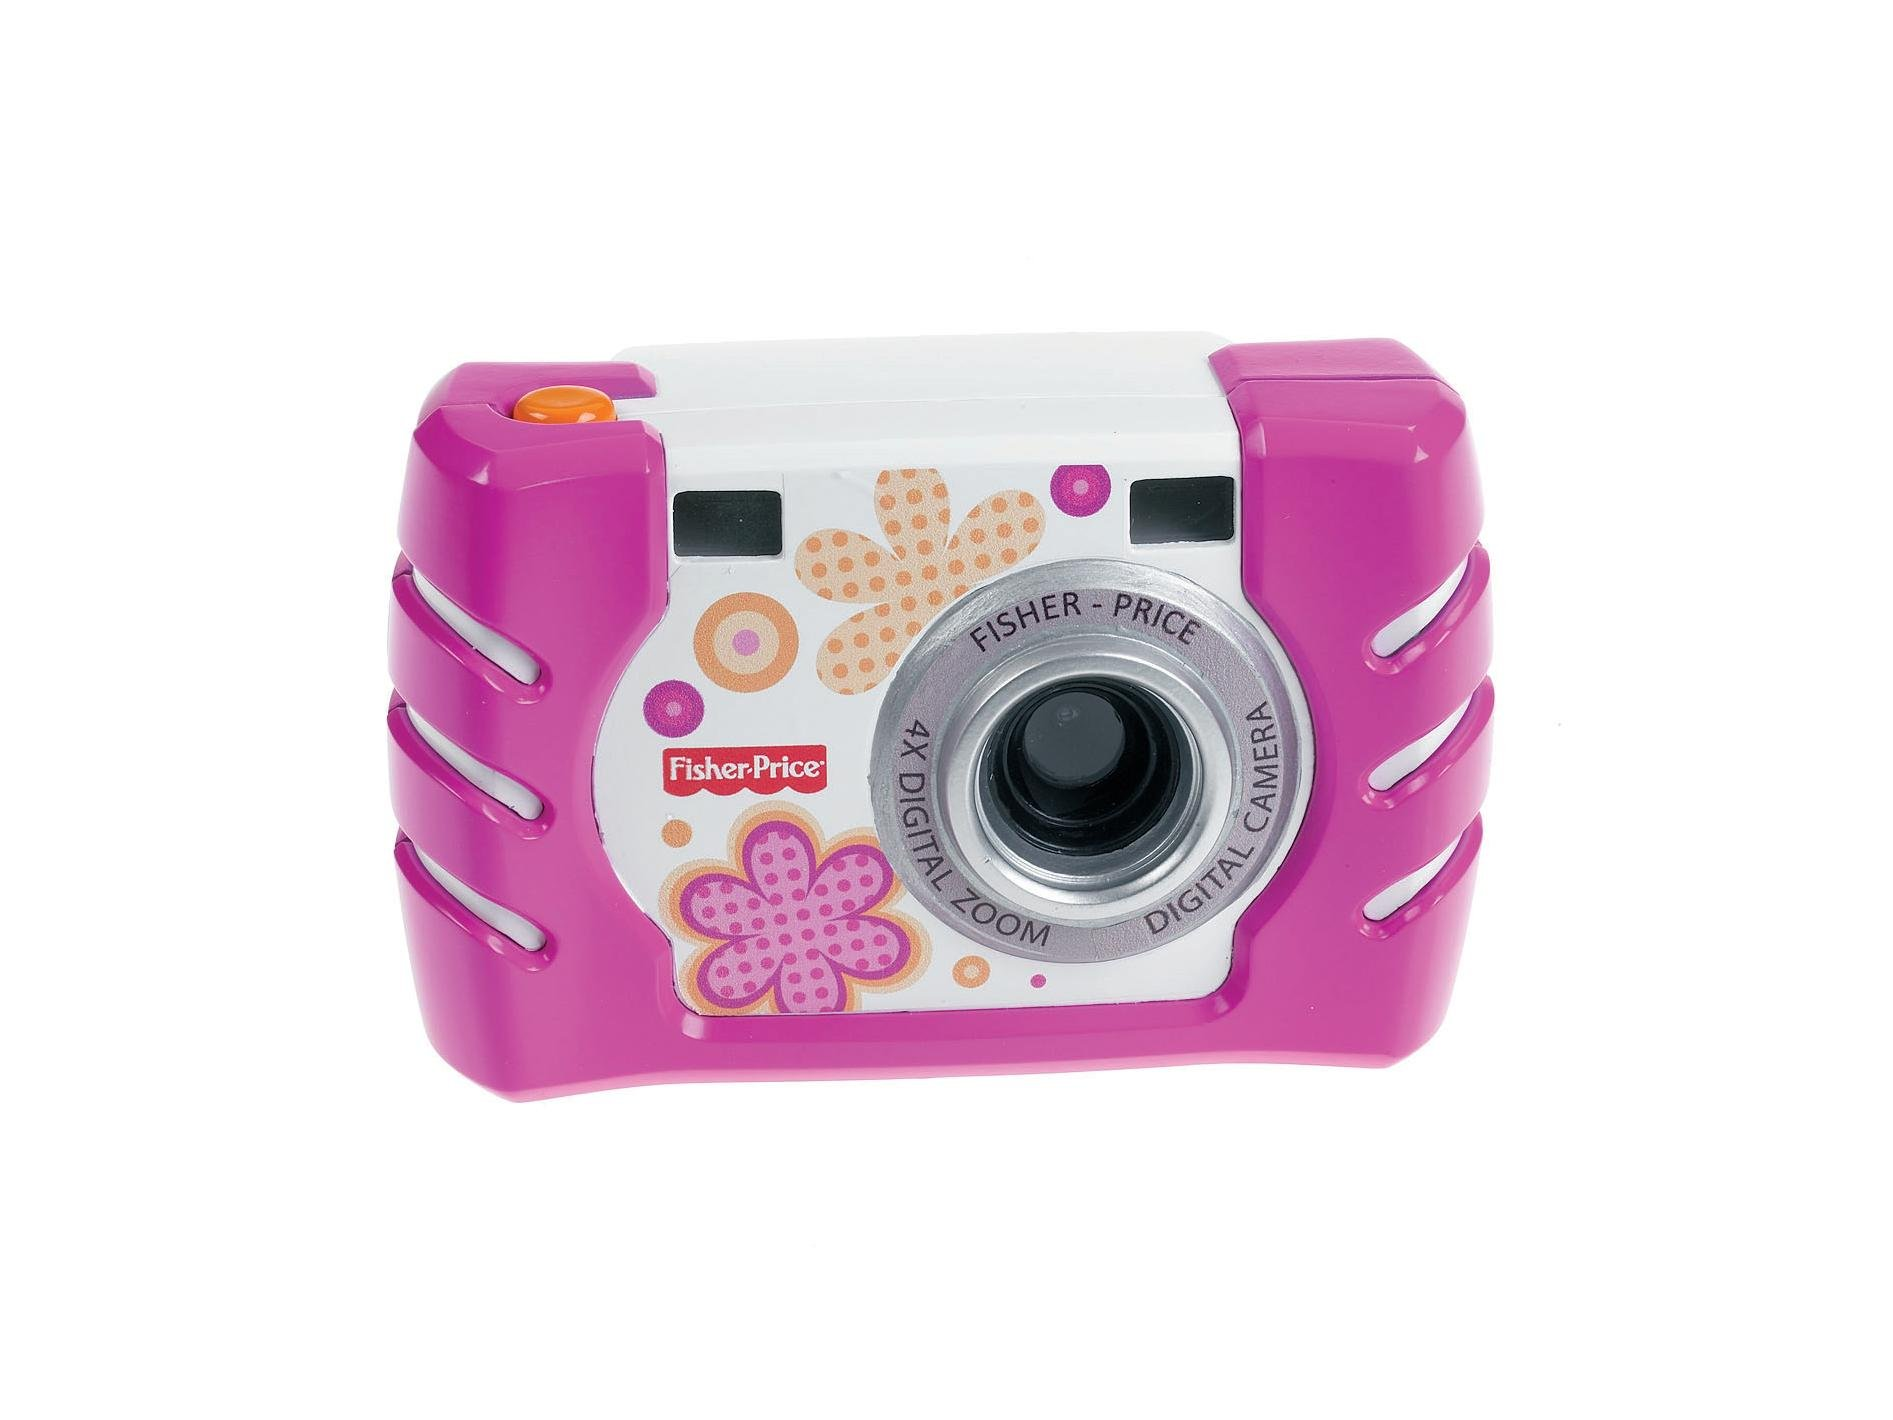 Fisher Price Kids Tough Digital Camera Slim Pink (W1460)